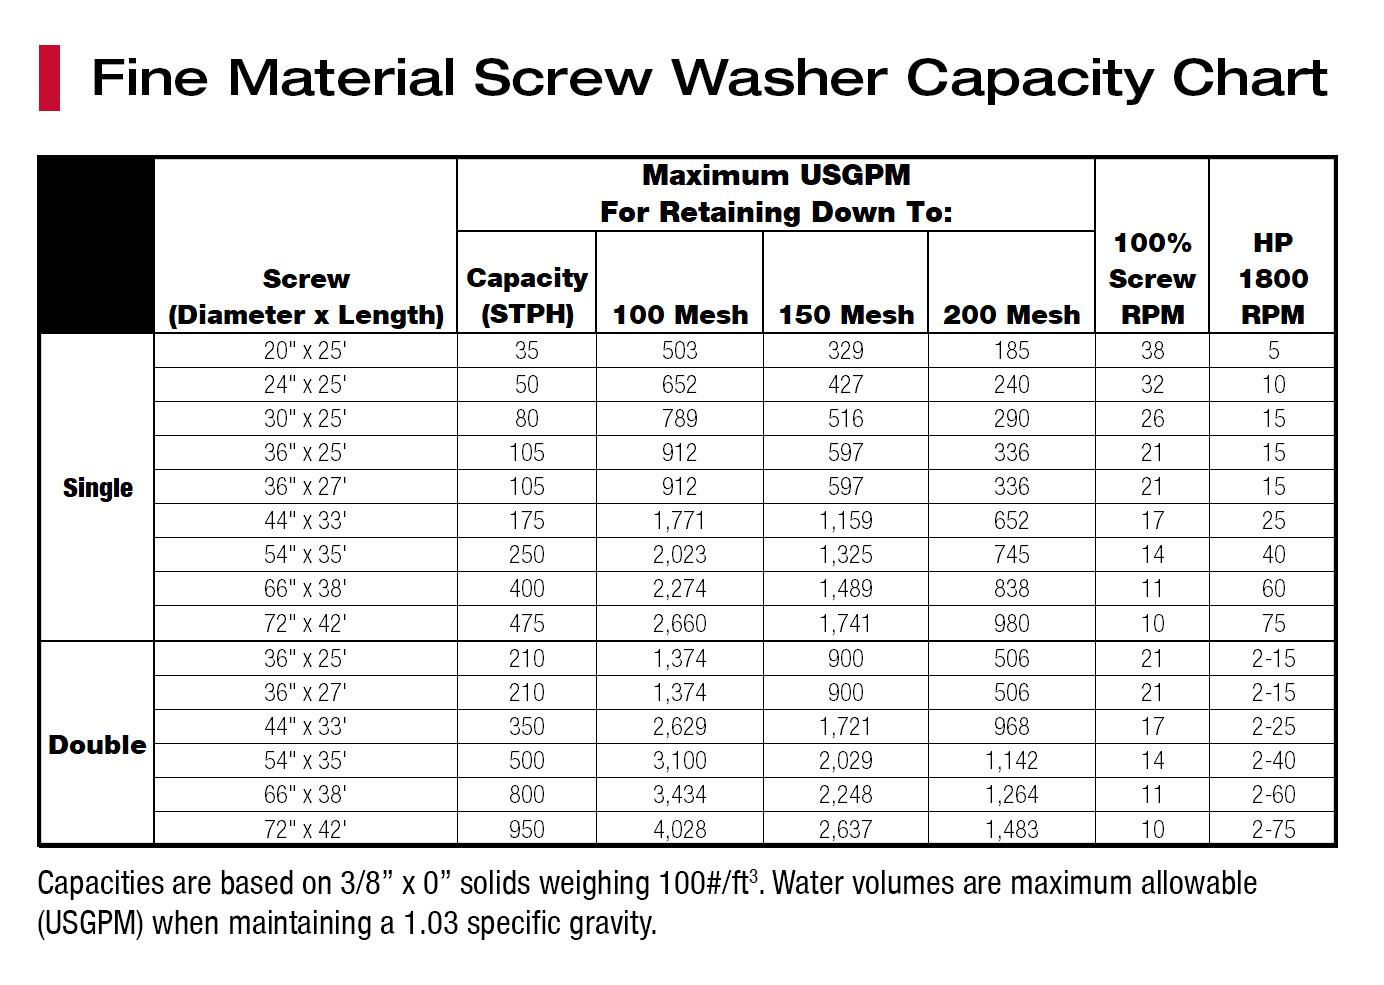 Fine-Material-Screw-Washer-capacity-chart.jpg?mtime=20210414113404#asset:53081